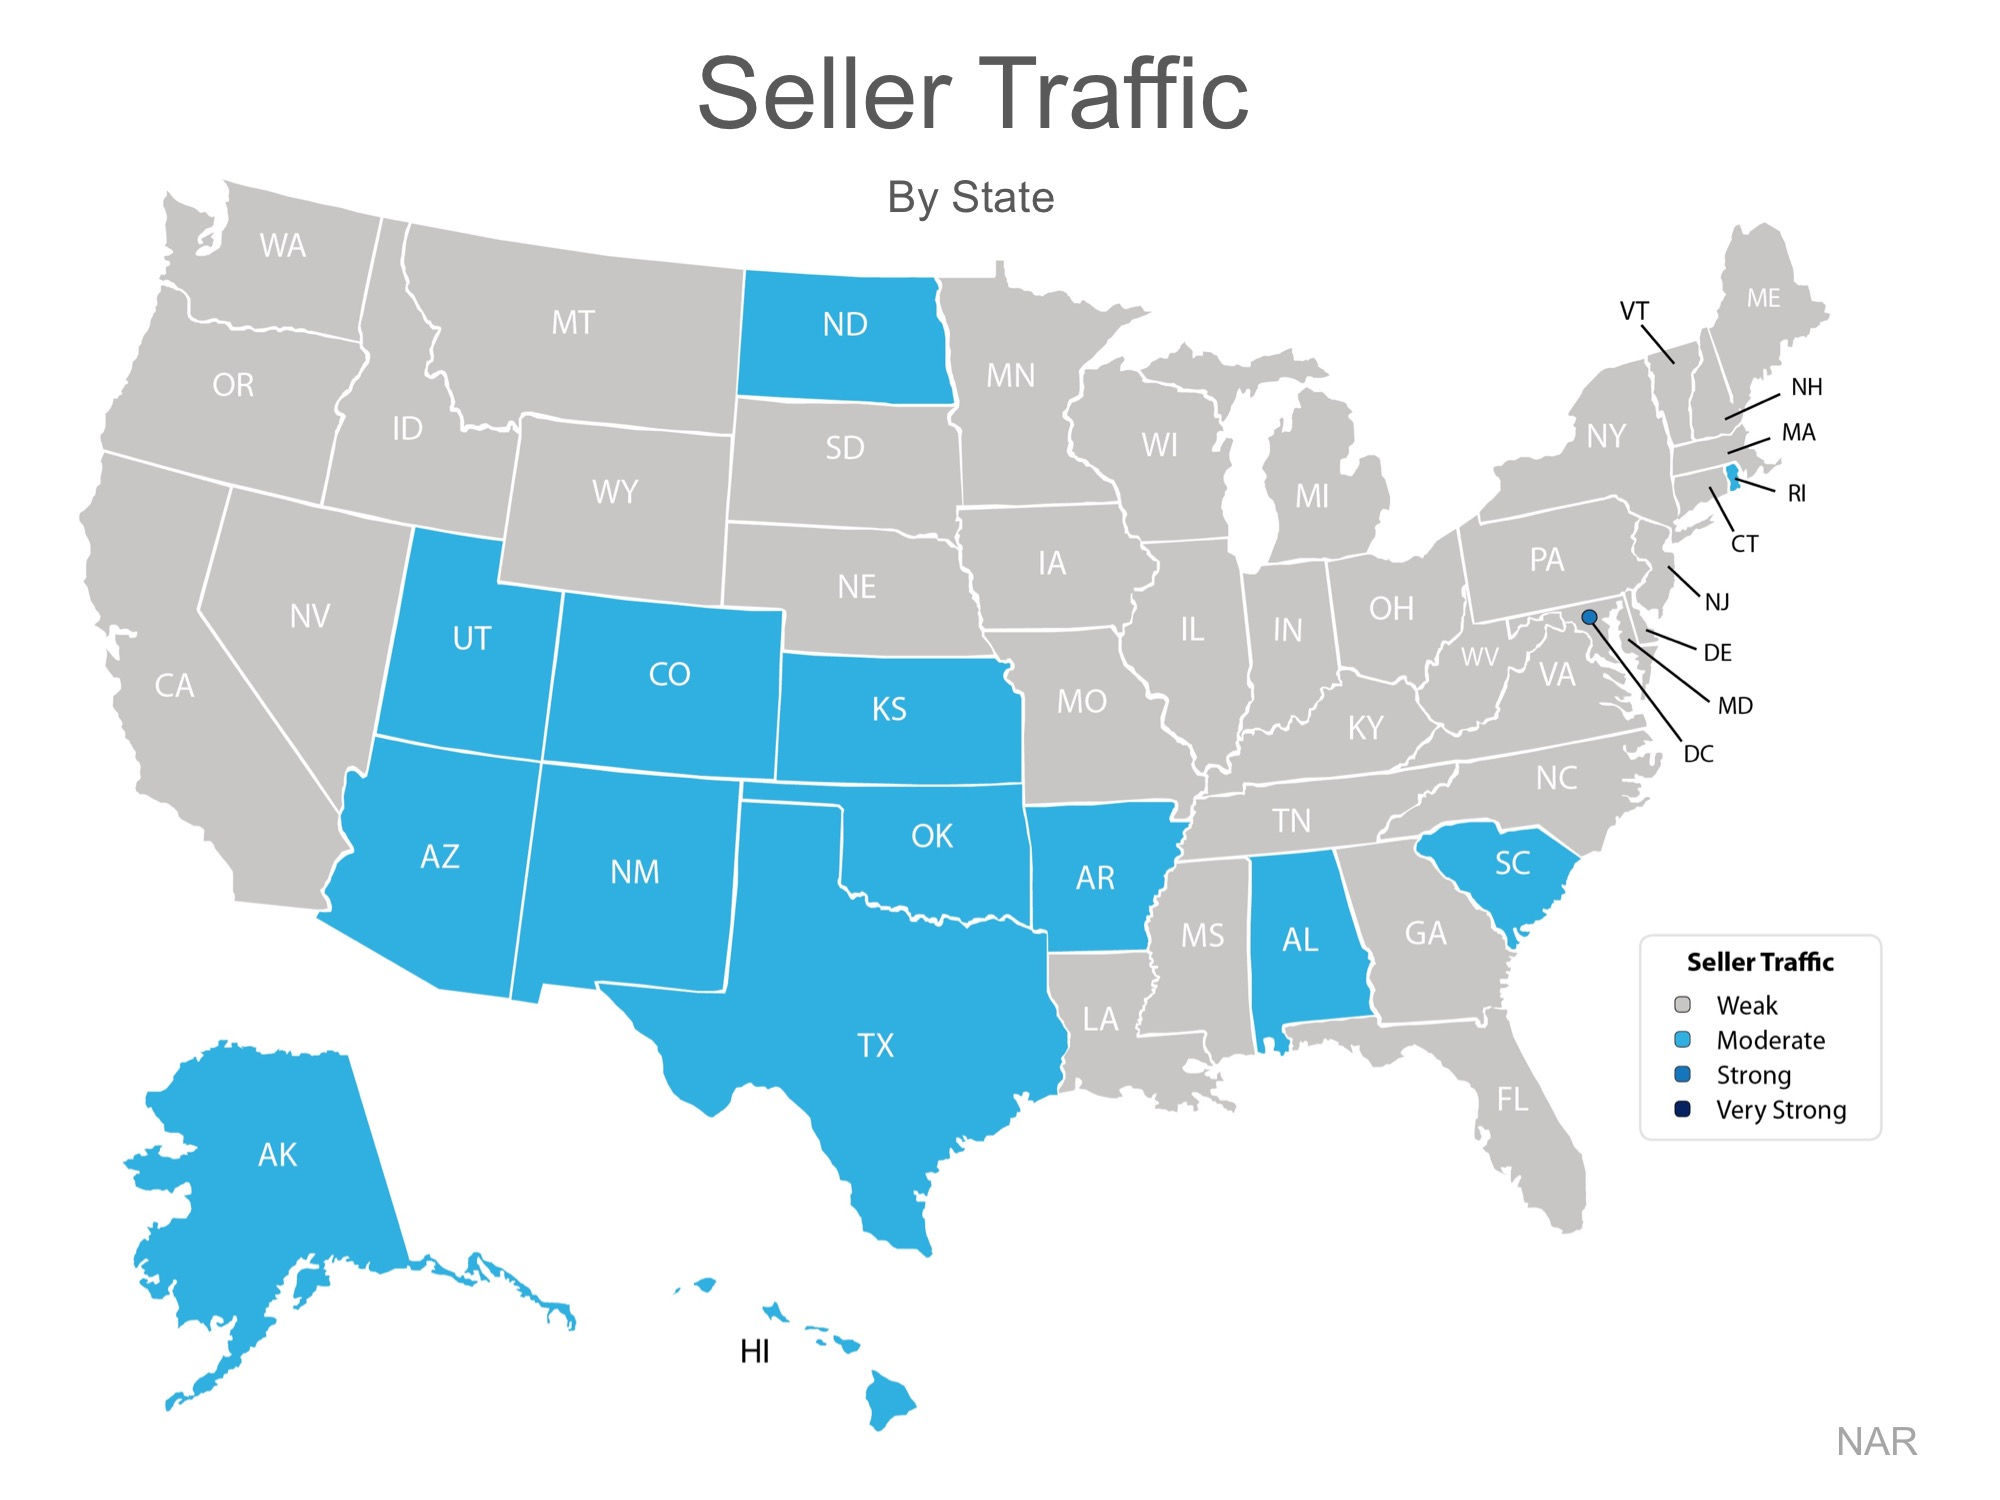 Home Seller Traffic By State